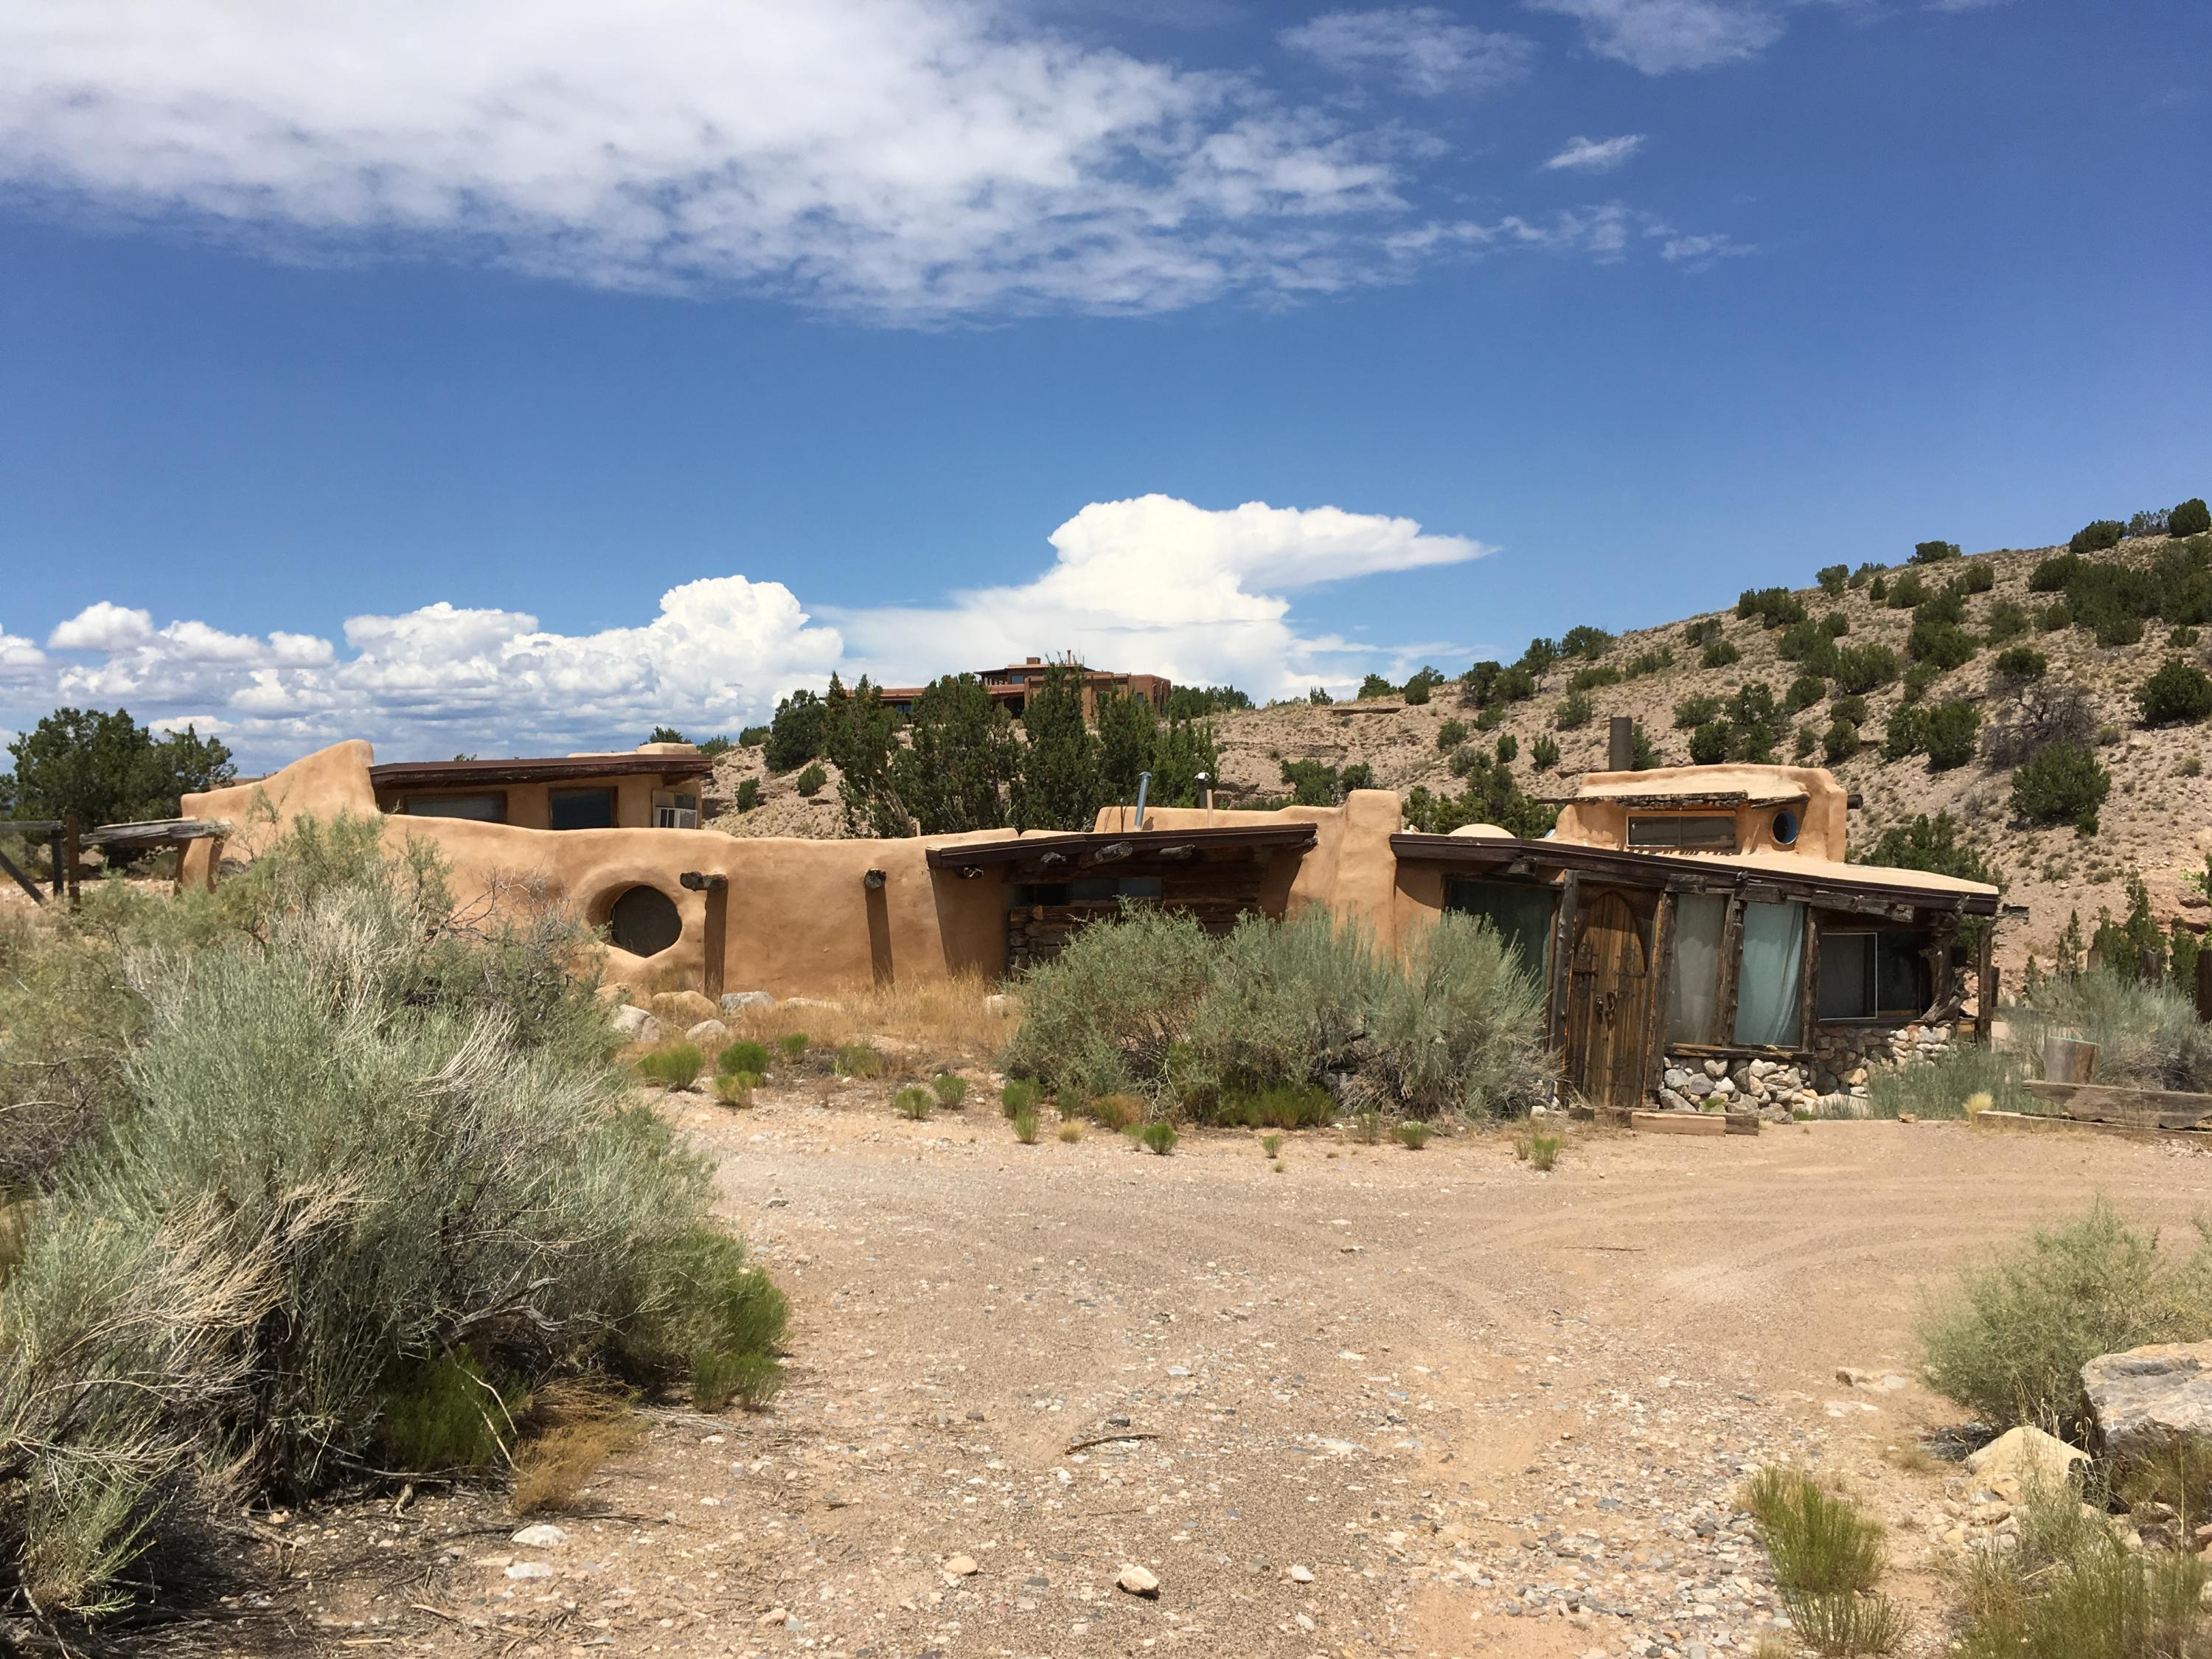 Unique adobe structure designed and occupied by renowned architectural designer Ivor Williams.  His career included projects in NM, Hawaii, NY and he was studied by the University of Oklahoma for his innovative and bold designs.  In true Williams style, this house feels more like walking through a 3-D sculpture, full of curves, levels and planes.  He has always dared to do things that others only think of, ie an outdoor shower, a sunken bedroom with rock walls, trees left intact even if they are growing through the house!  His ingenious use of raw materials evokes a rustic, organic appeal that is like none other and is perfect for the person with vivid imagination and creativity.  Bathroom and kitchen can be finished to your design..